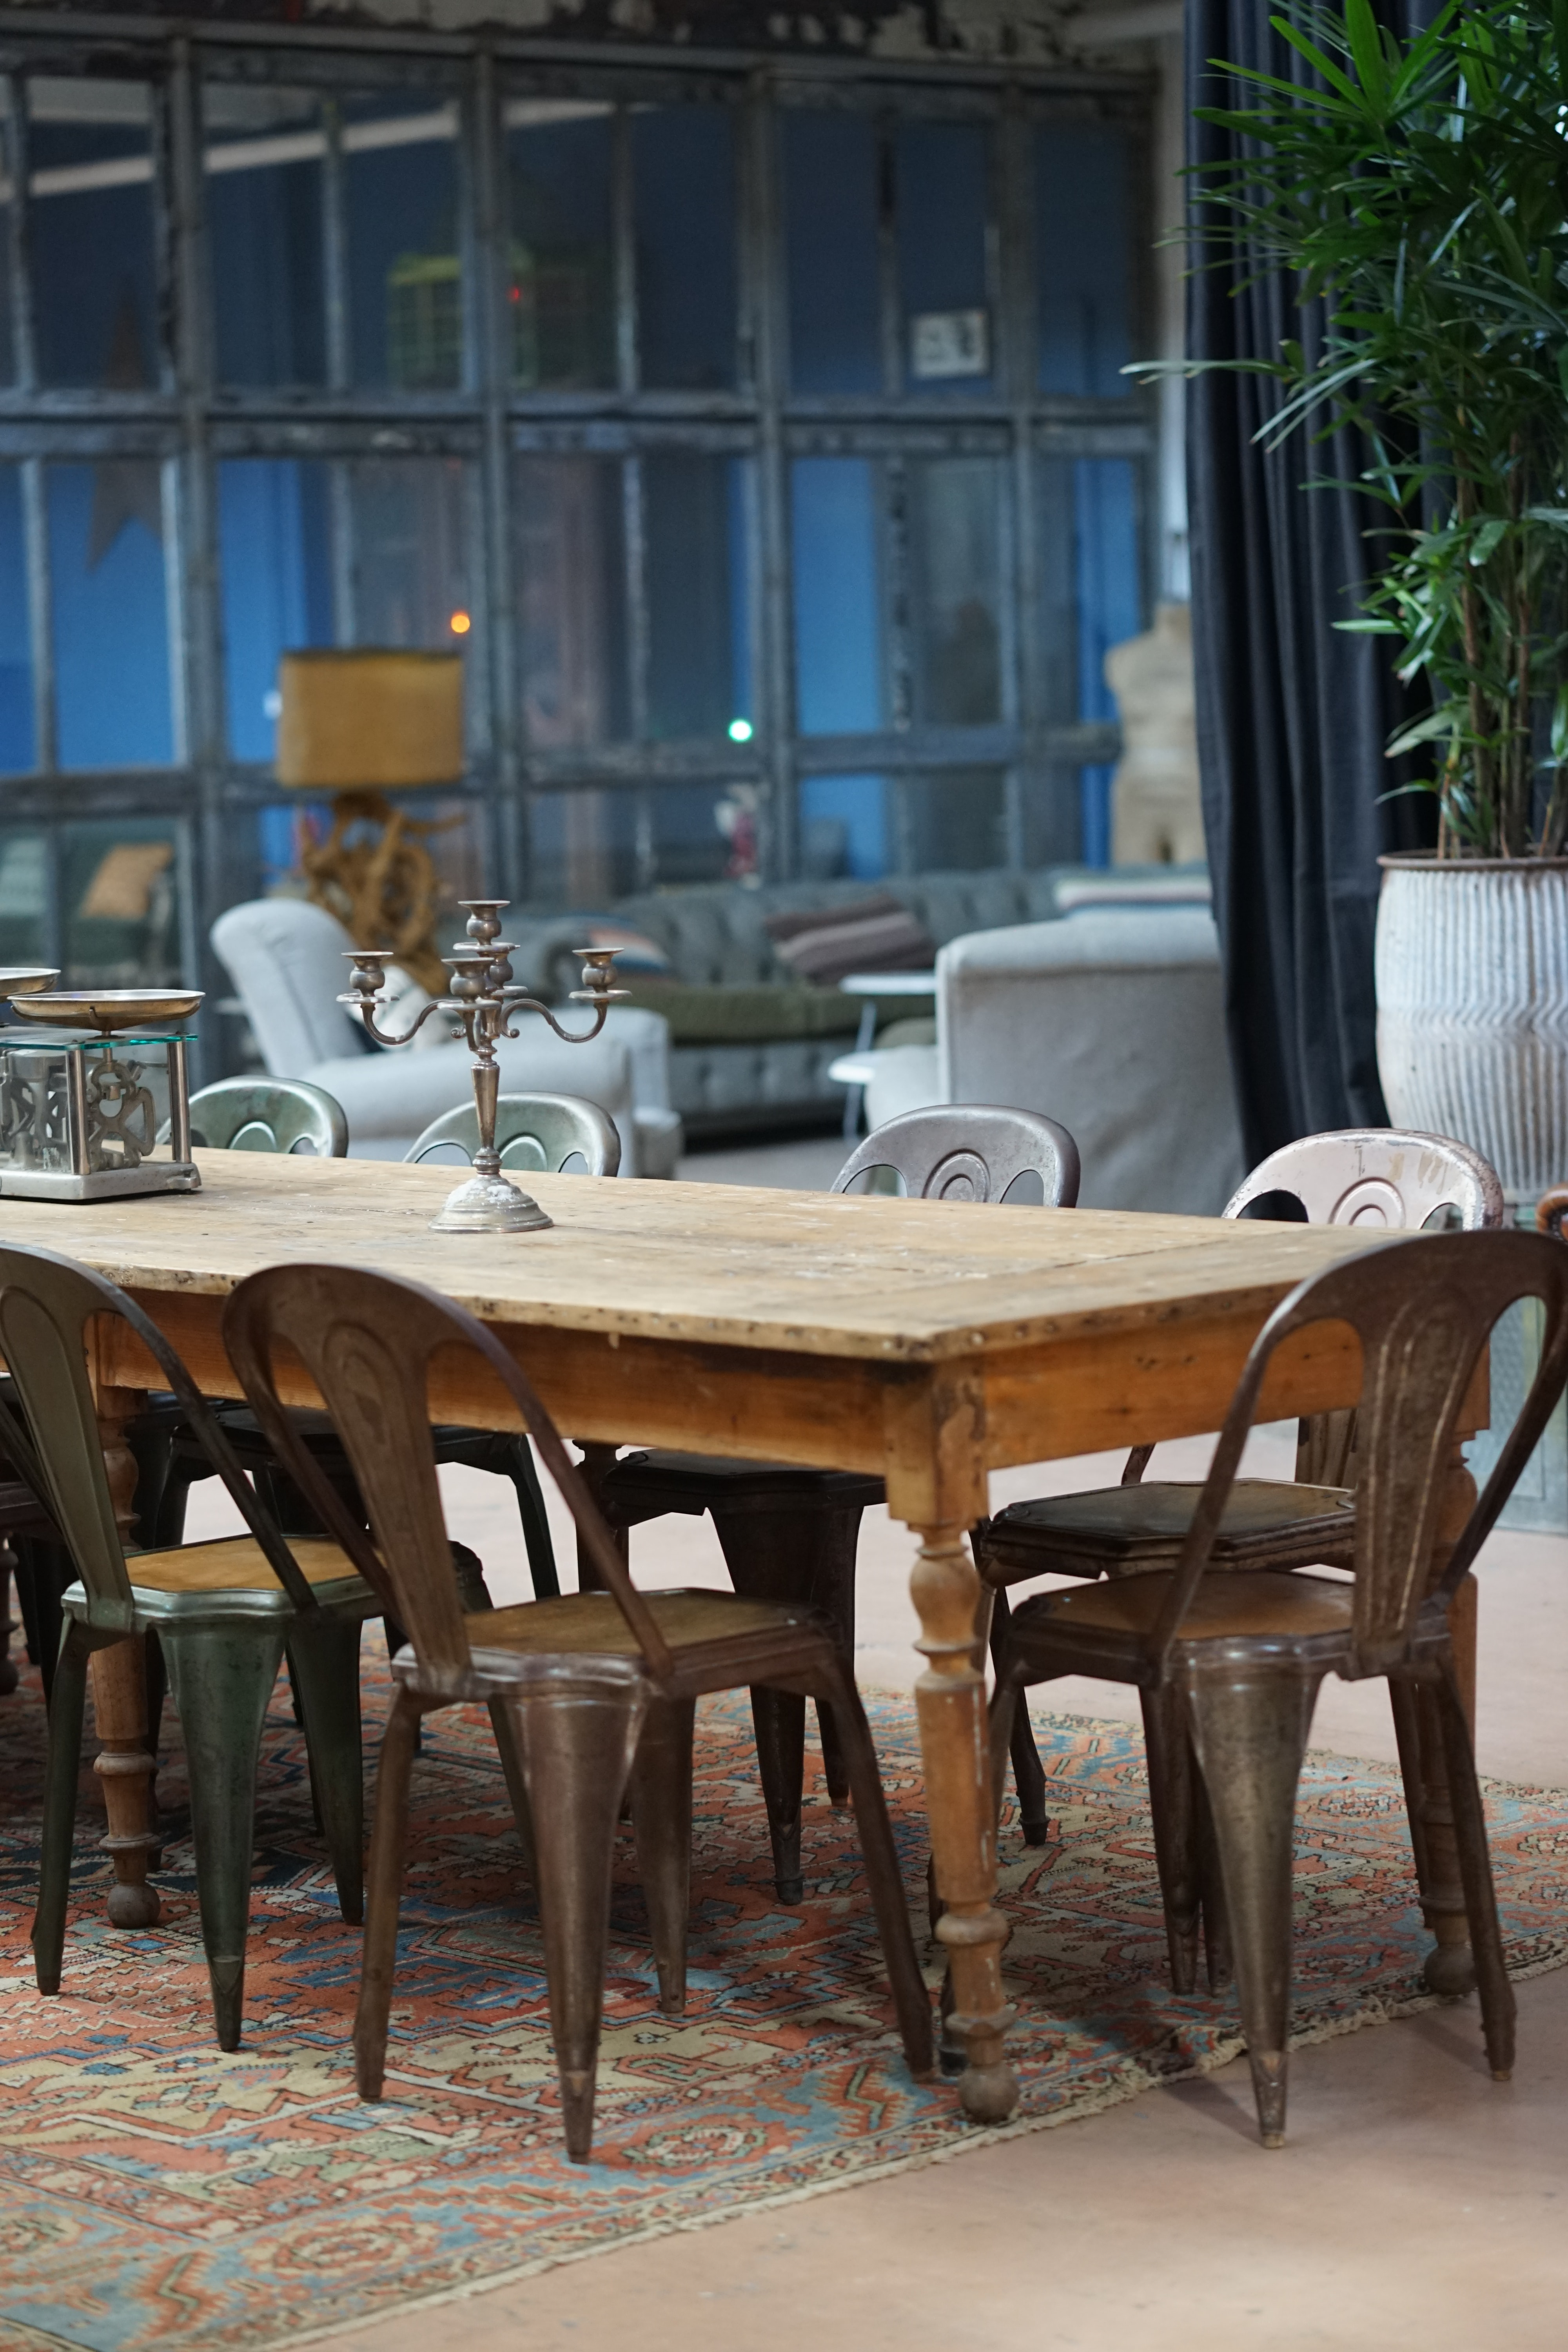 rectangular brown wooden table and chairs dining set